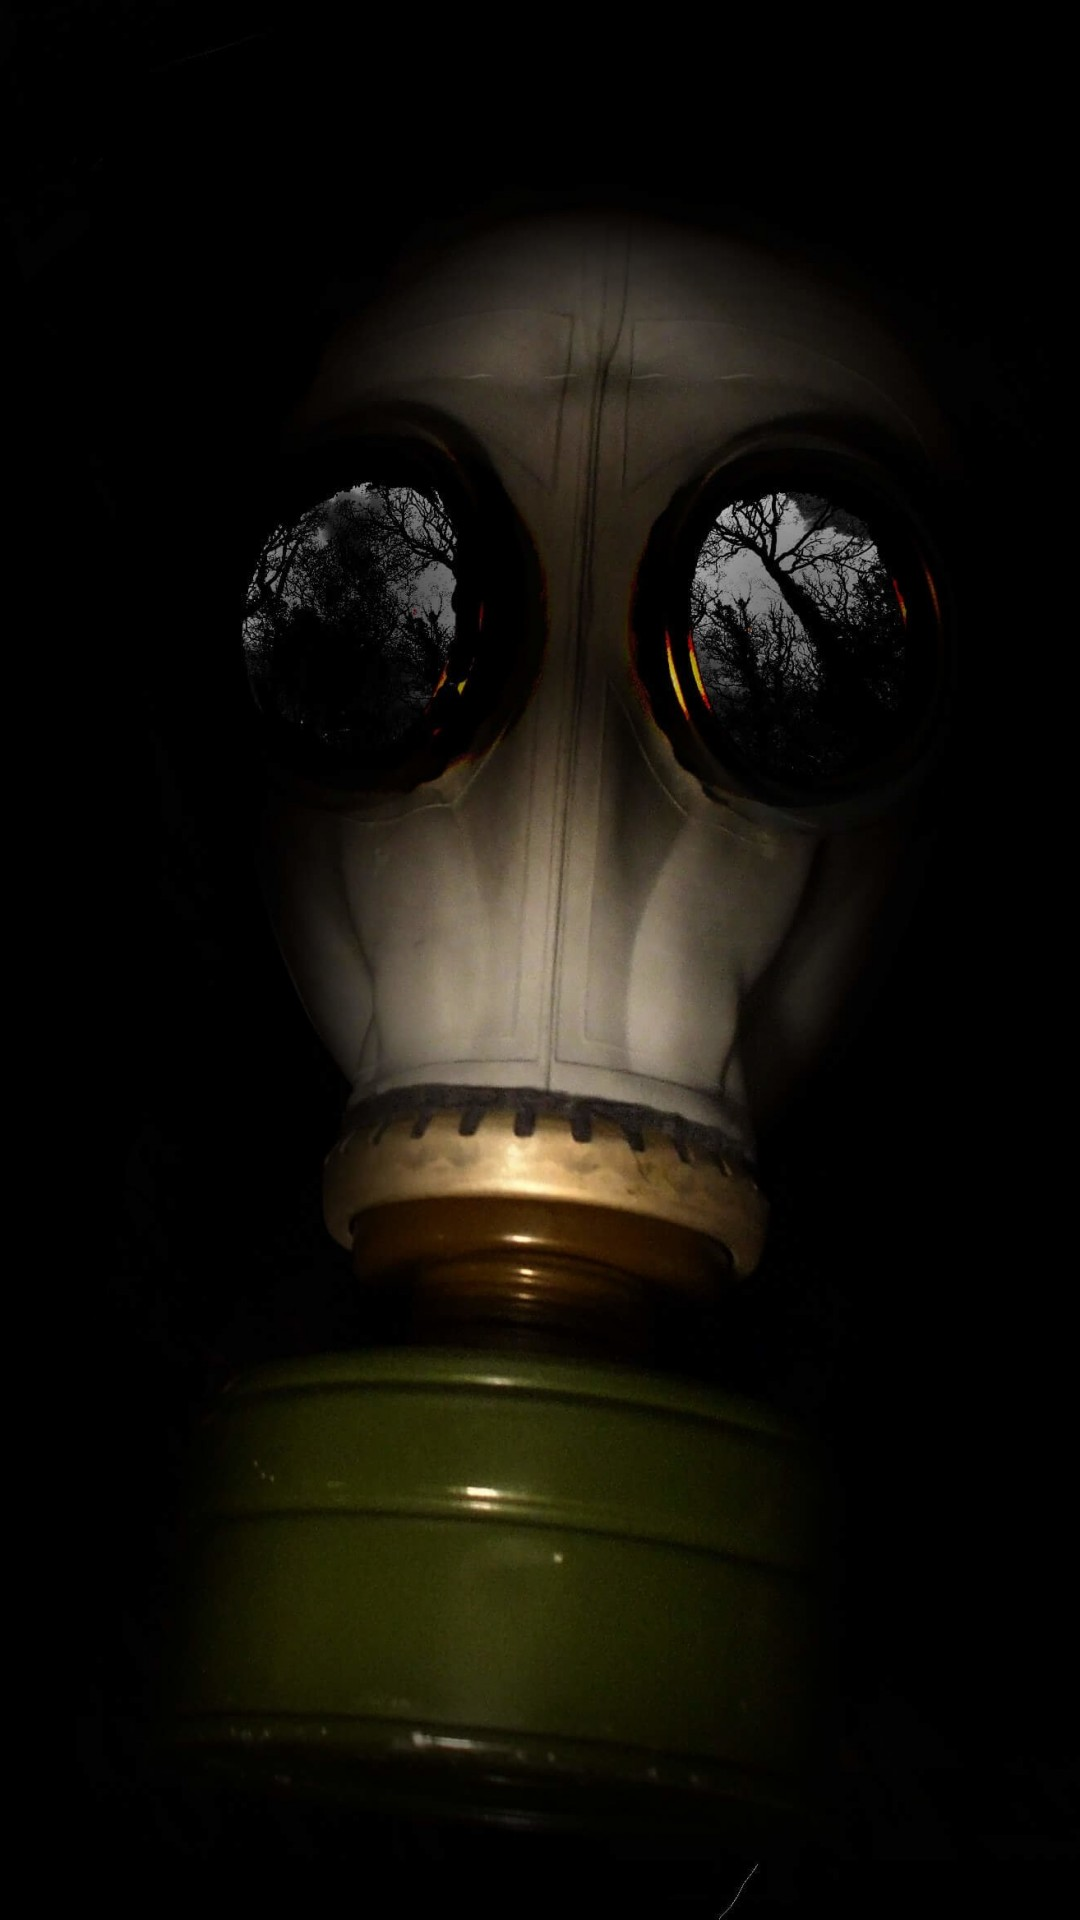 WWII Gas Mask Wallpaper for SAMSUNG Galaxy Note 3